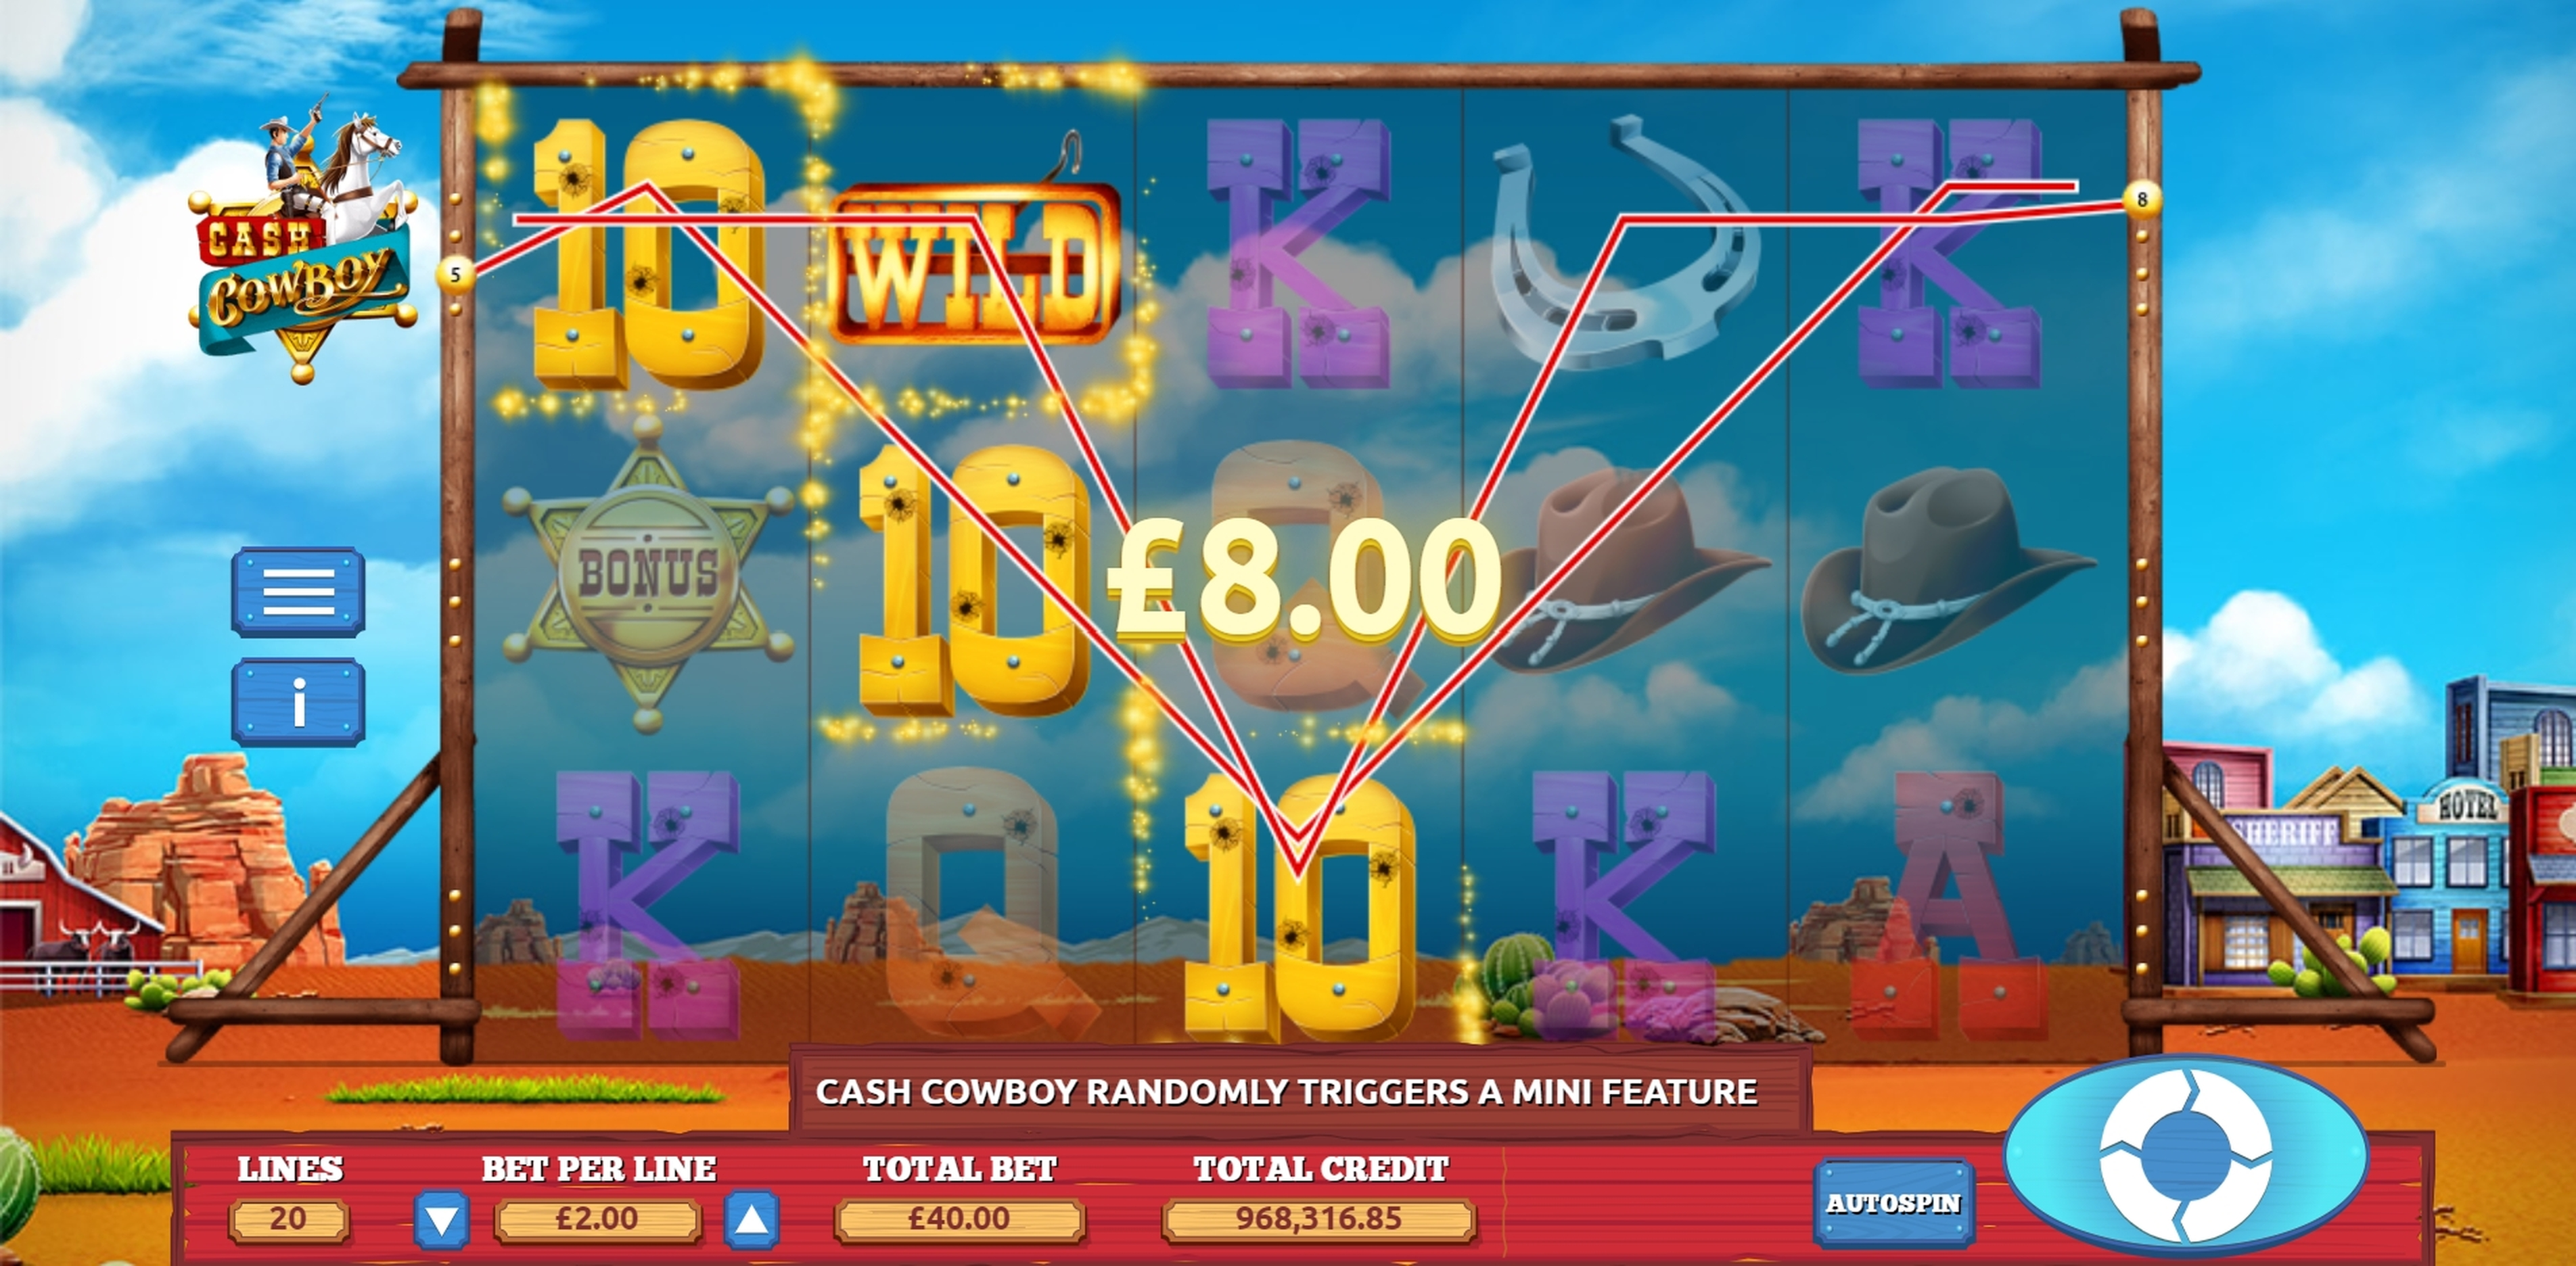 Win Money in Cash Cowboys Free Slot Game by The Games Company